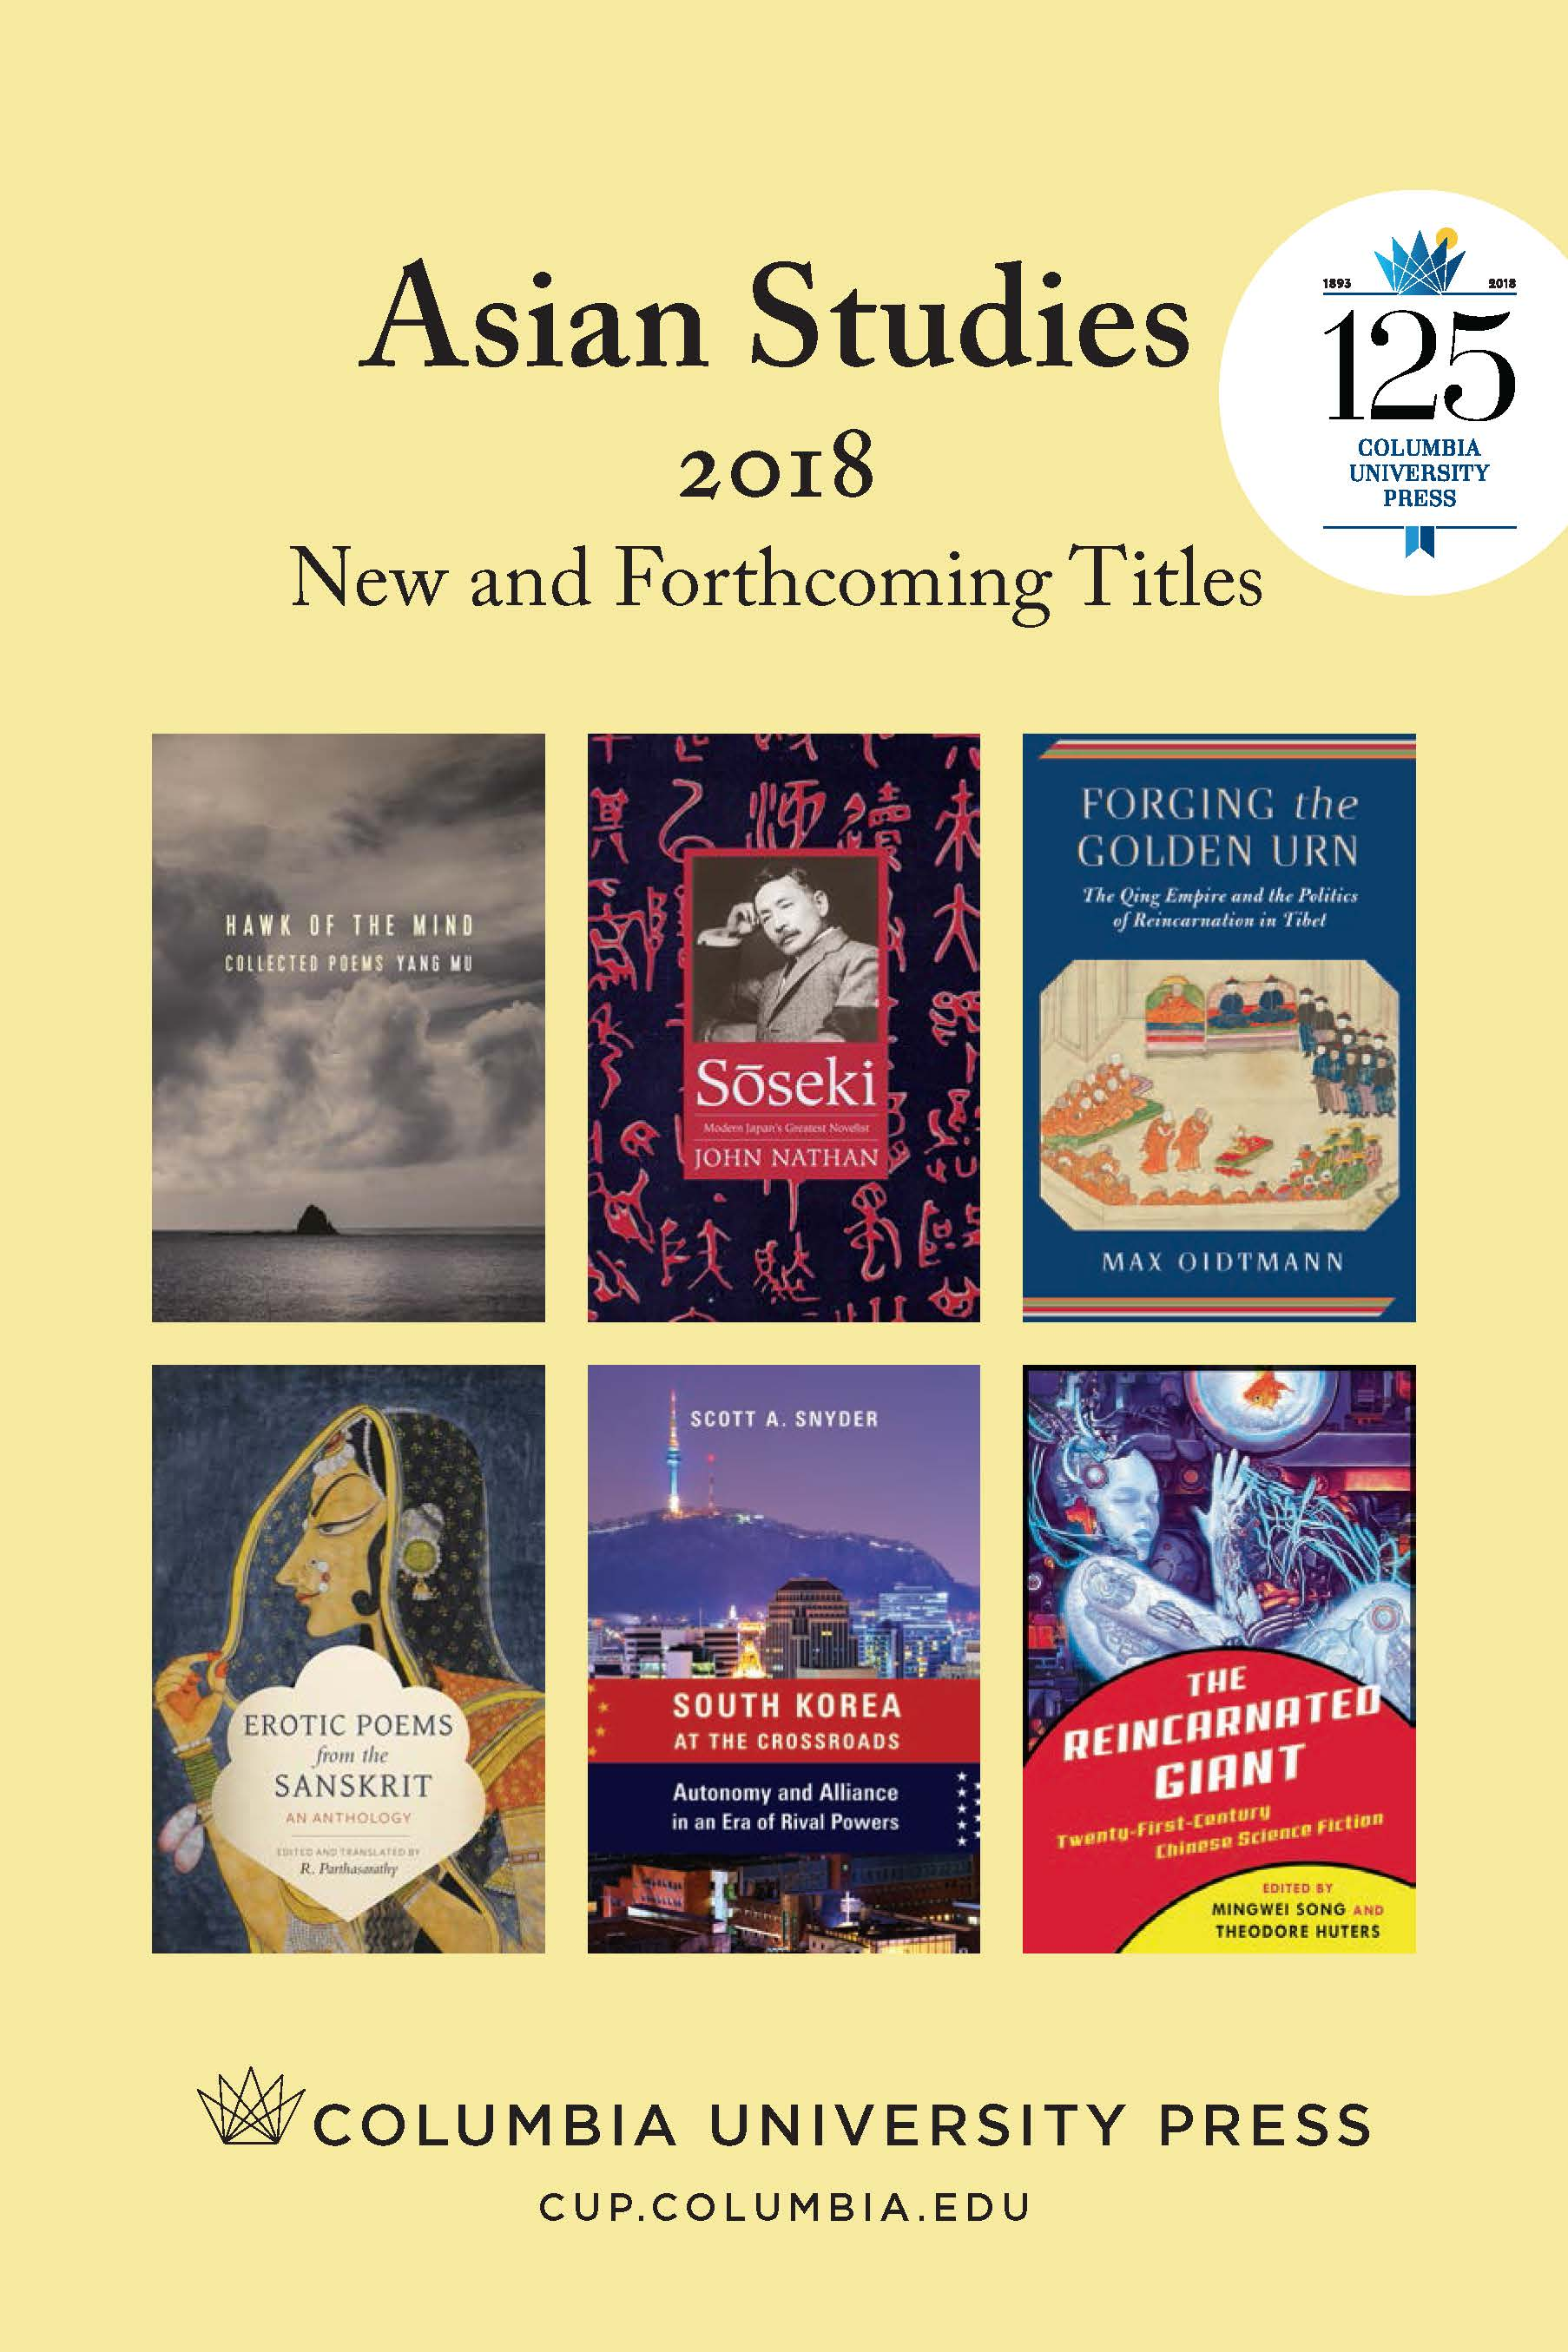 2018 Asian Studies Catalog